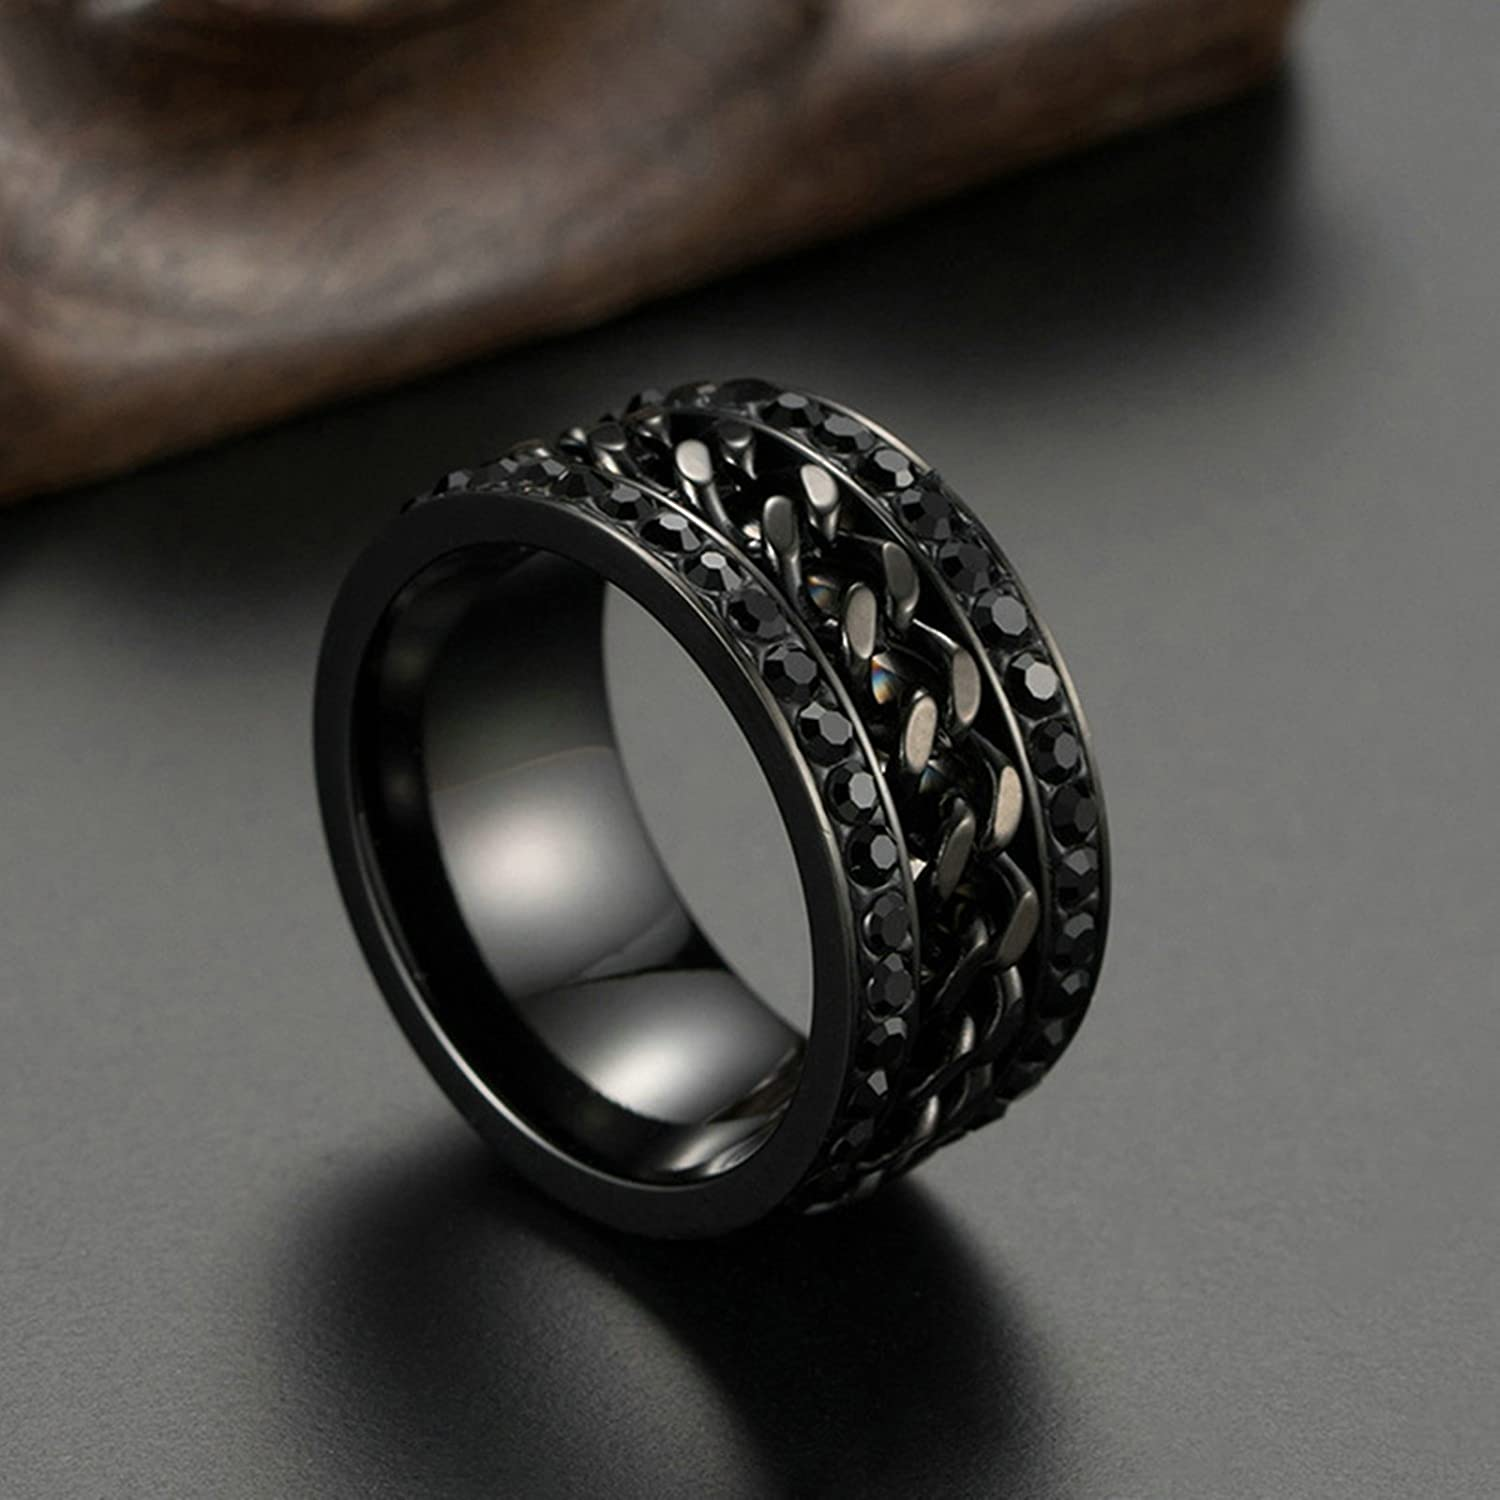 Bishilin Stainless Steel Rings for Him Necklace with Cubic Zirconia Wedding Rings Size 9